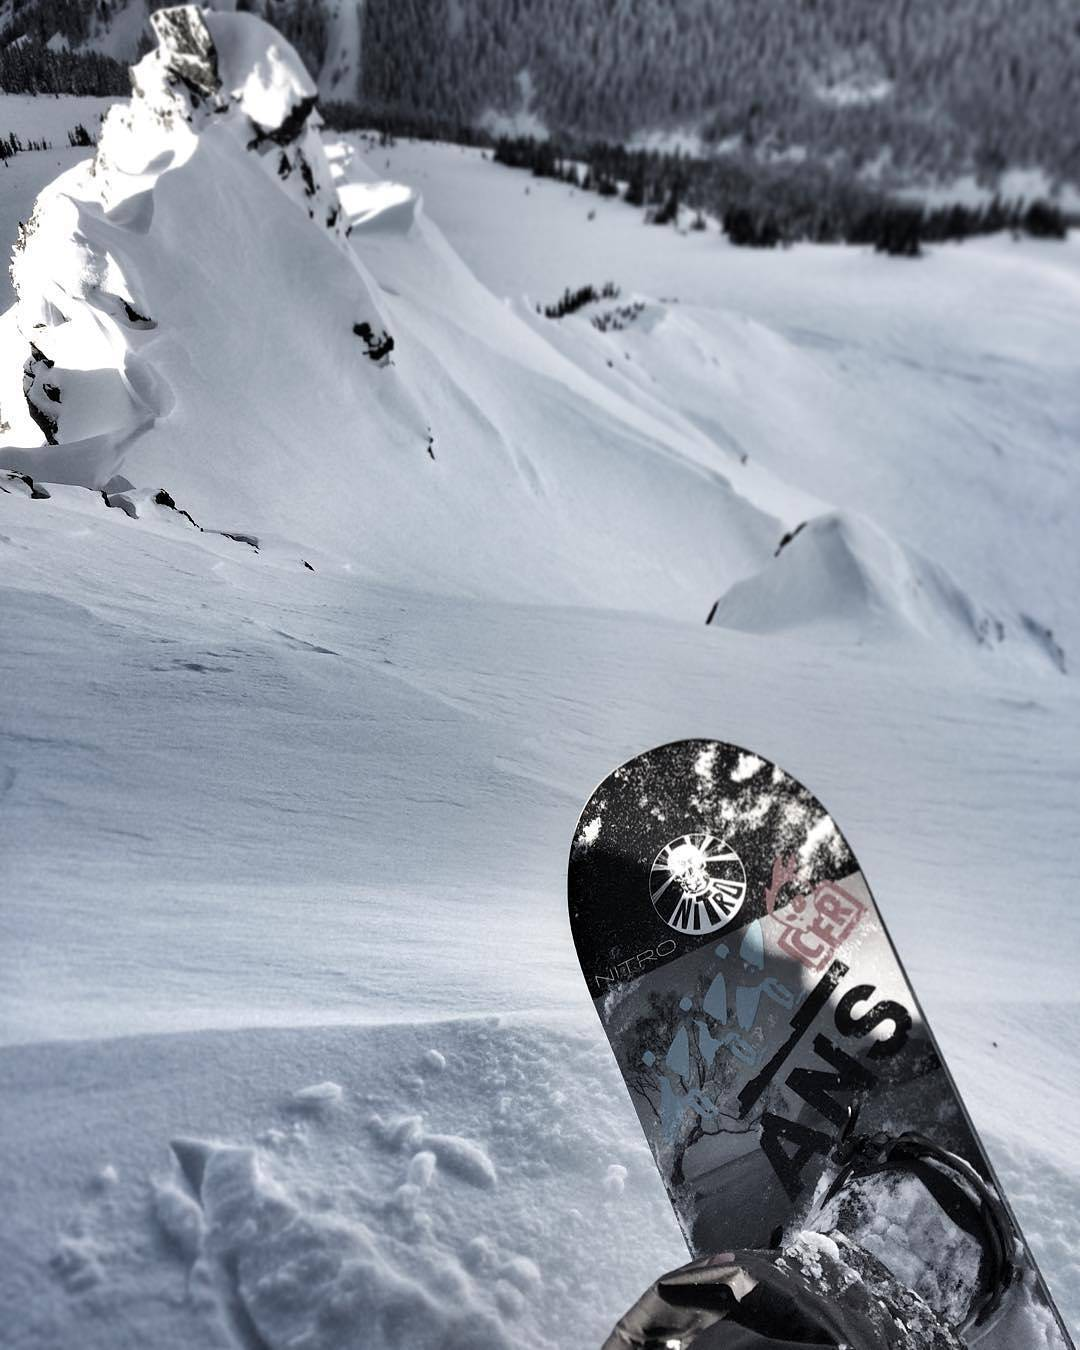 Joel Loverin (@ruk1er) getting after it! #snowboarding #powder #fluxbindings #joelloverin